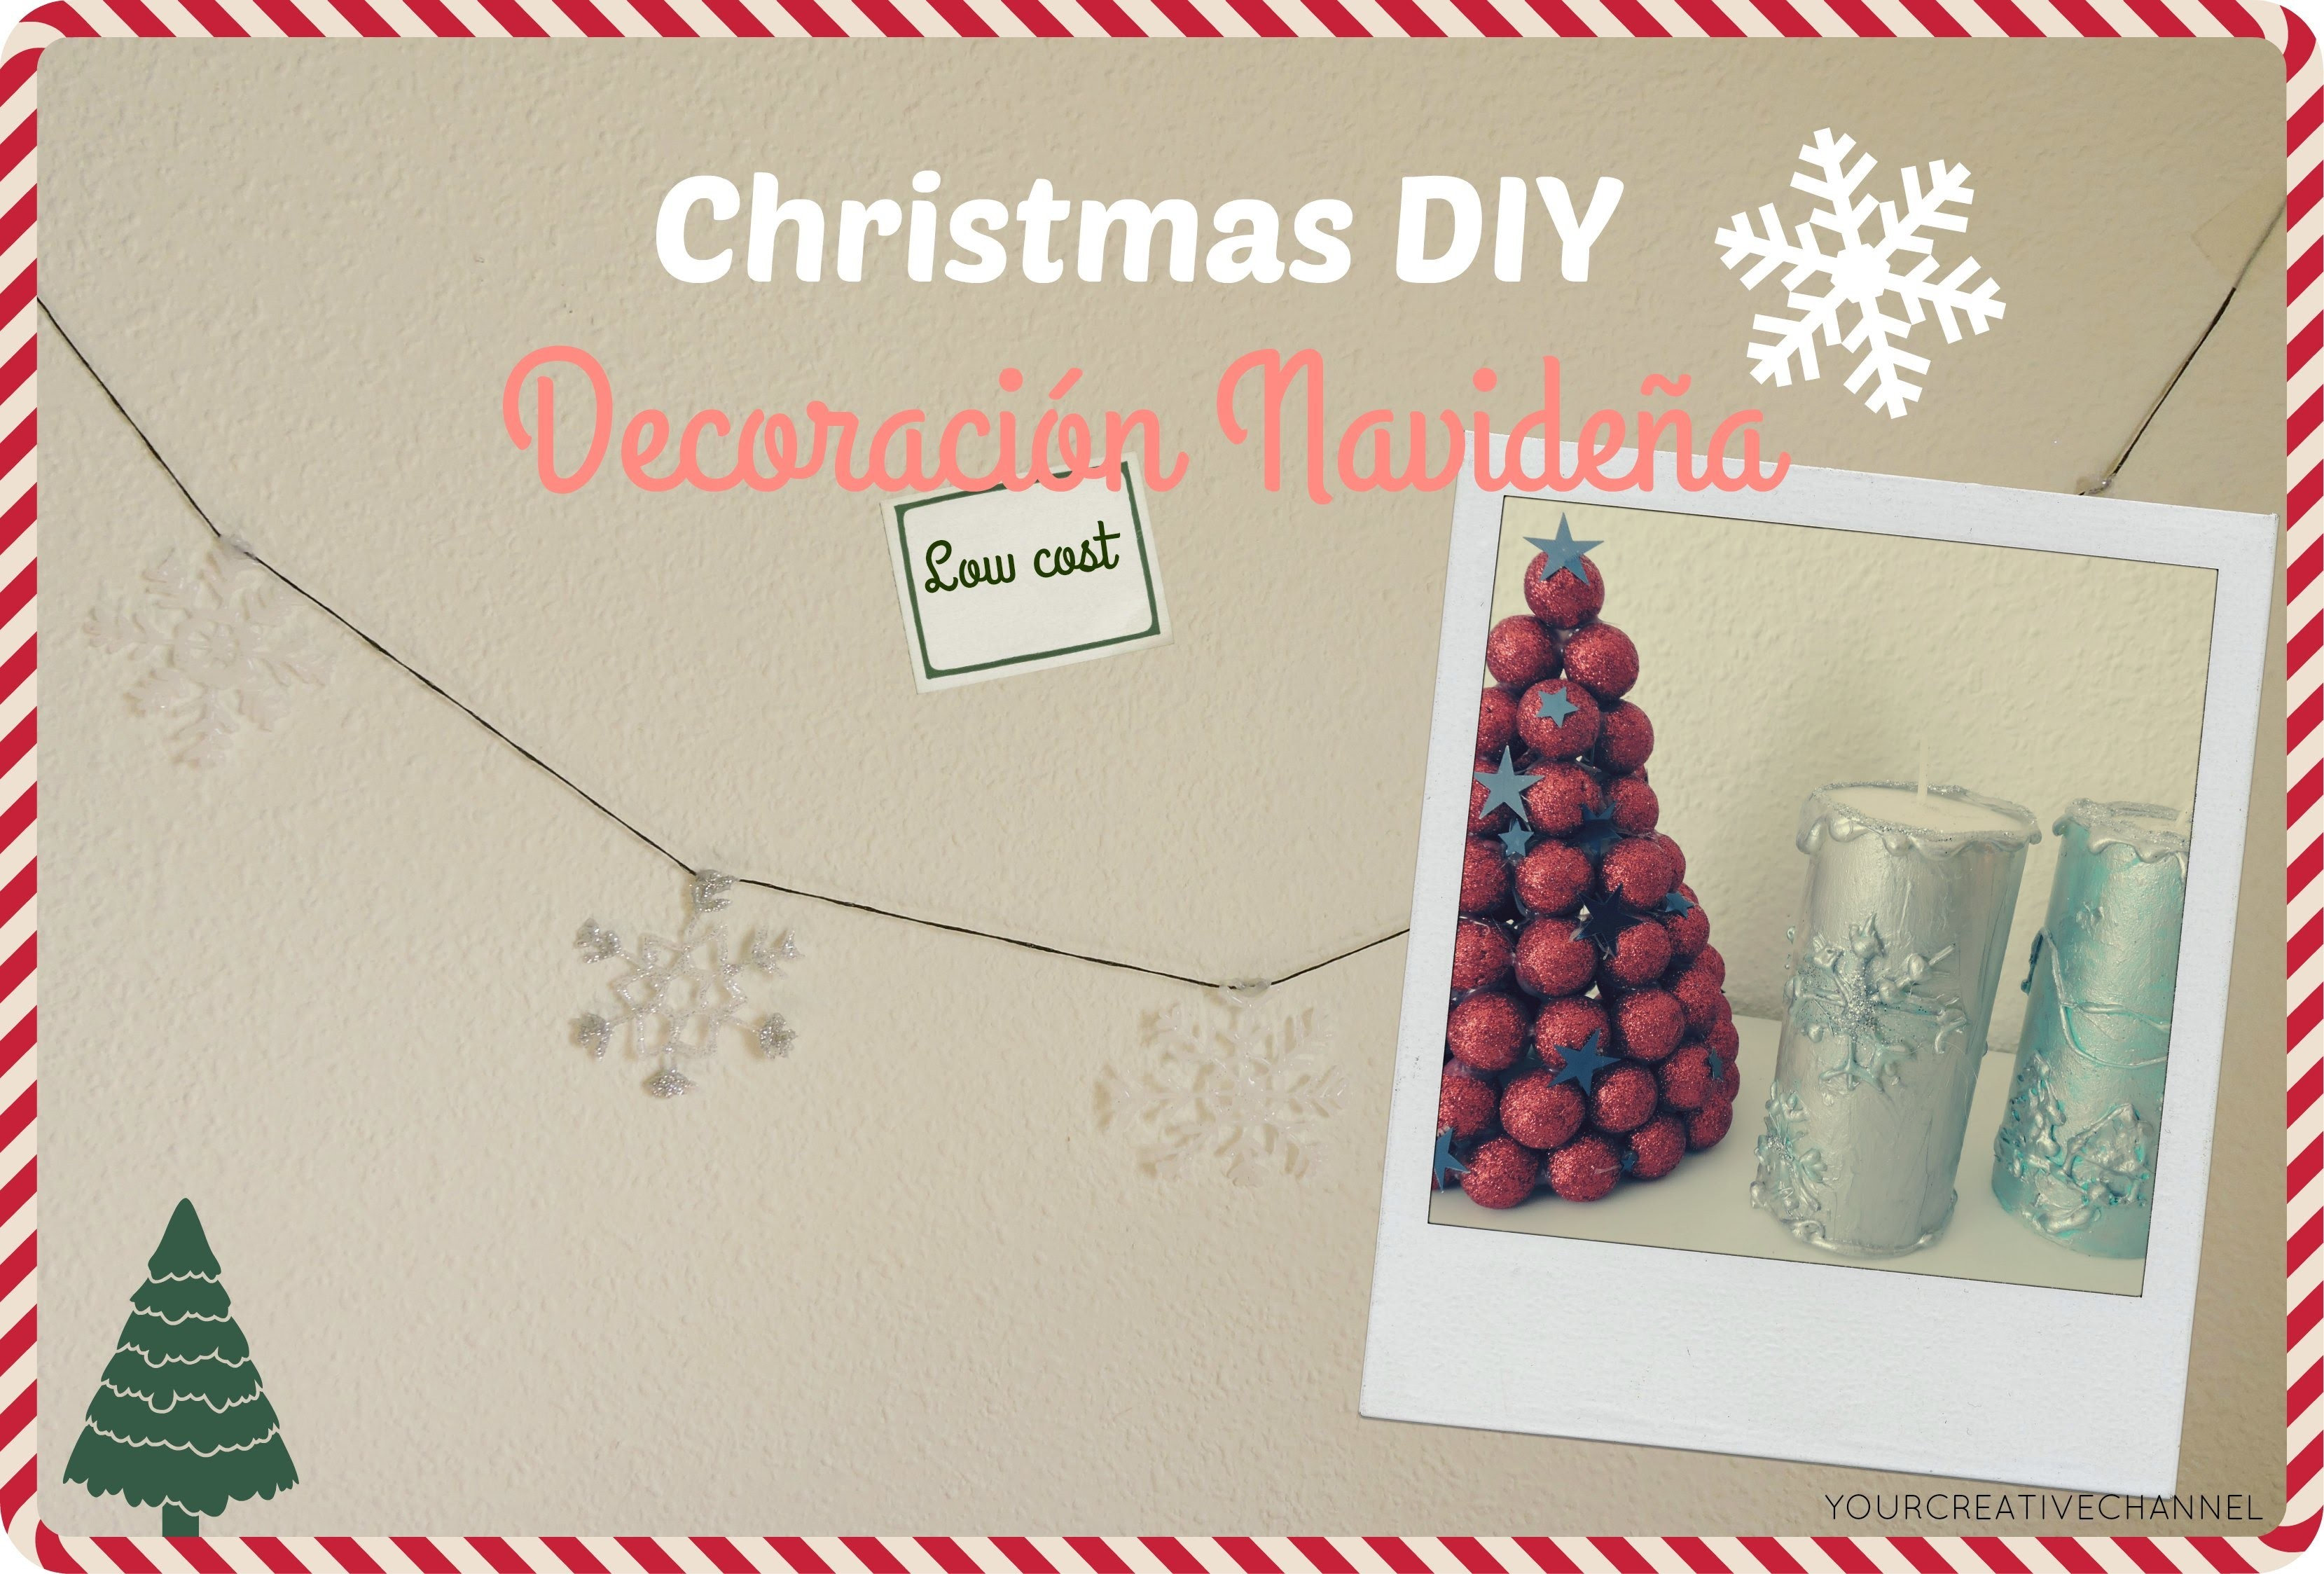 Decoraciones Navideñas DIY - Christmas DIY decorations